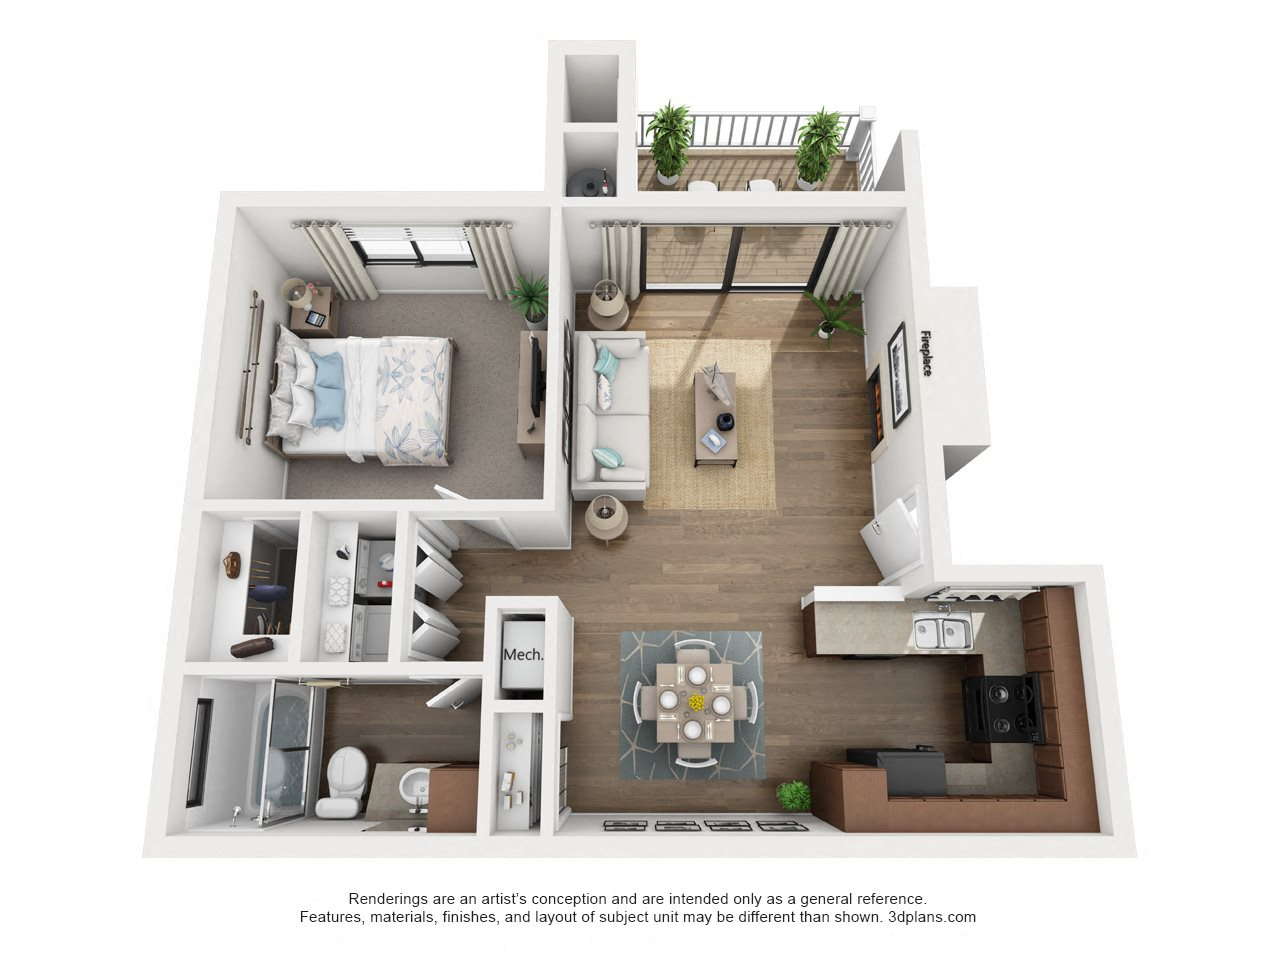 1 Bdrm, Bath, Downstairs Floor Plan 1